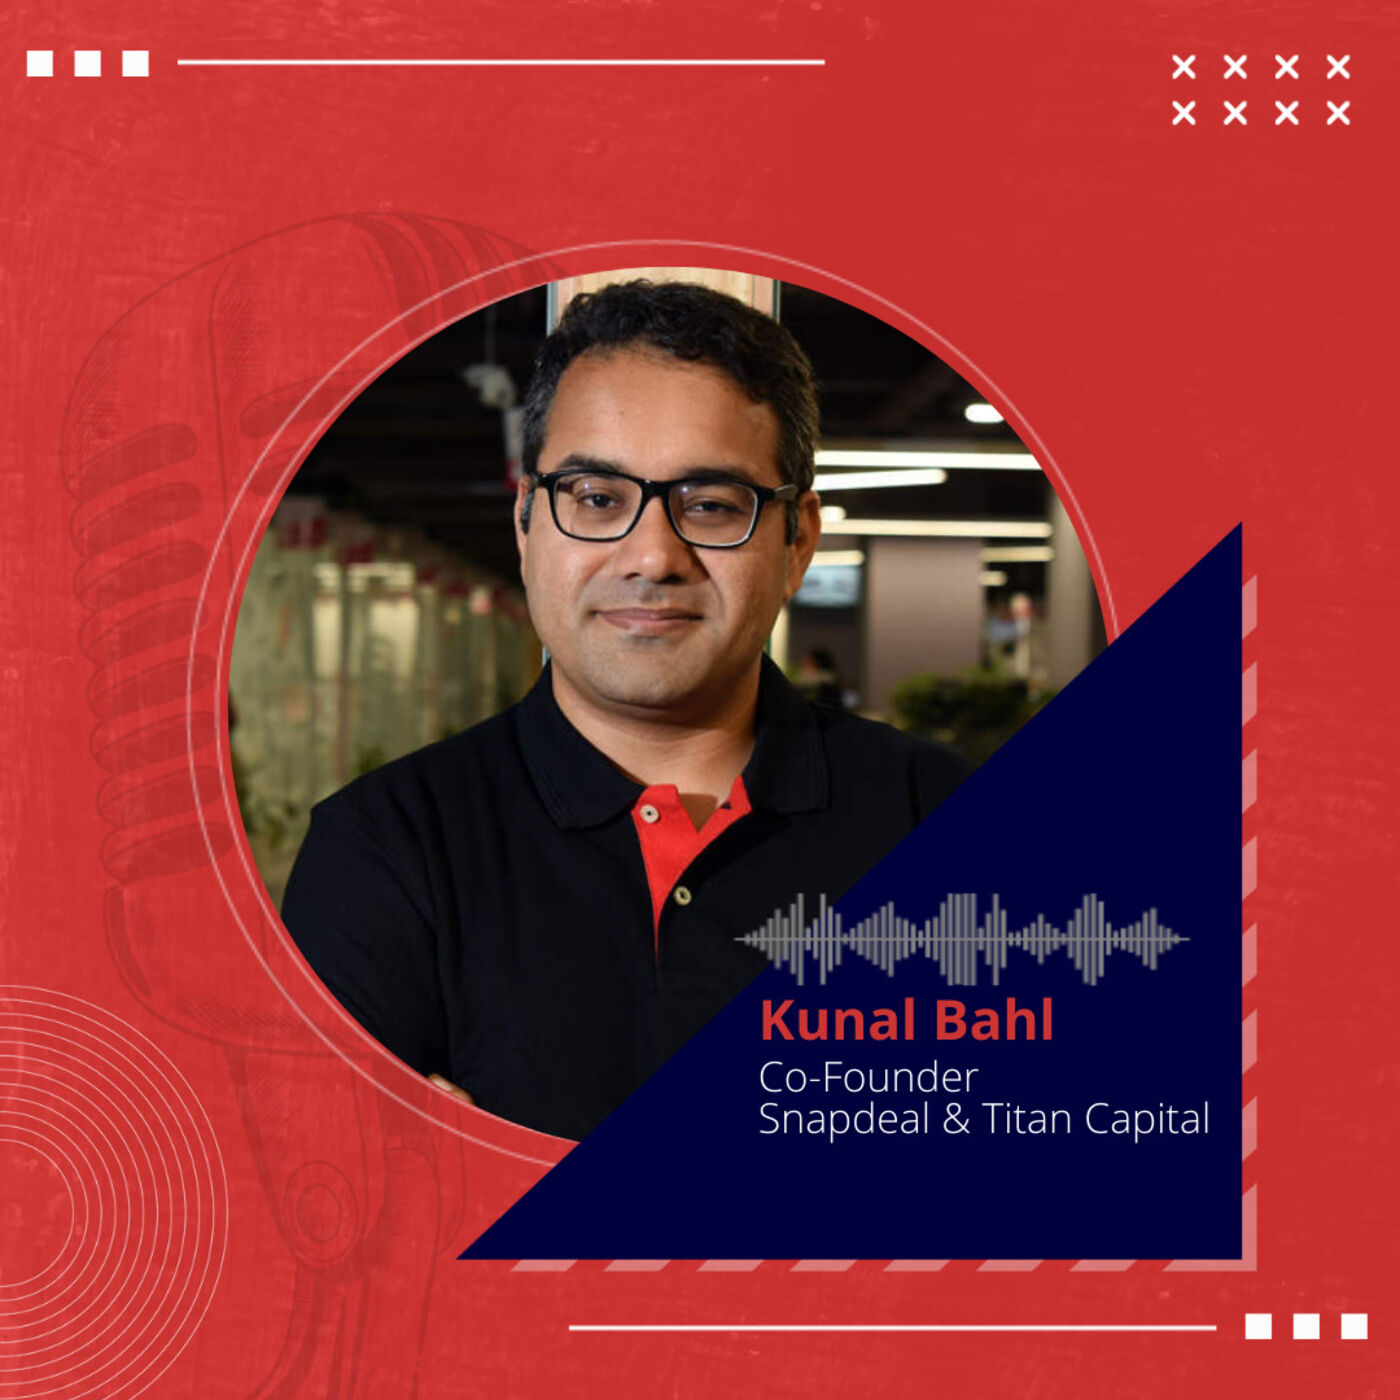 Inside the mind of Kunal Bahl, Co-Founder, Snapdeal & Titan Capital